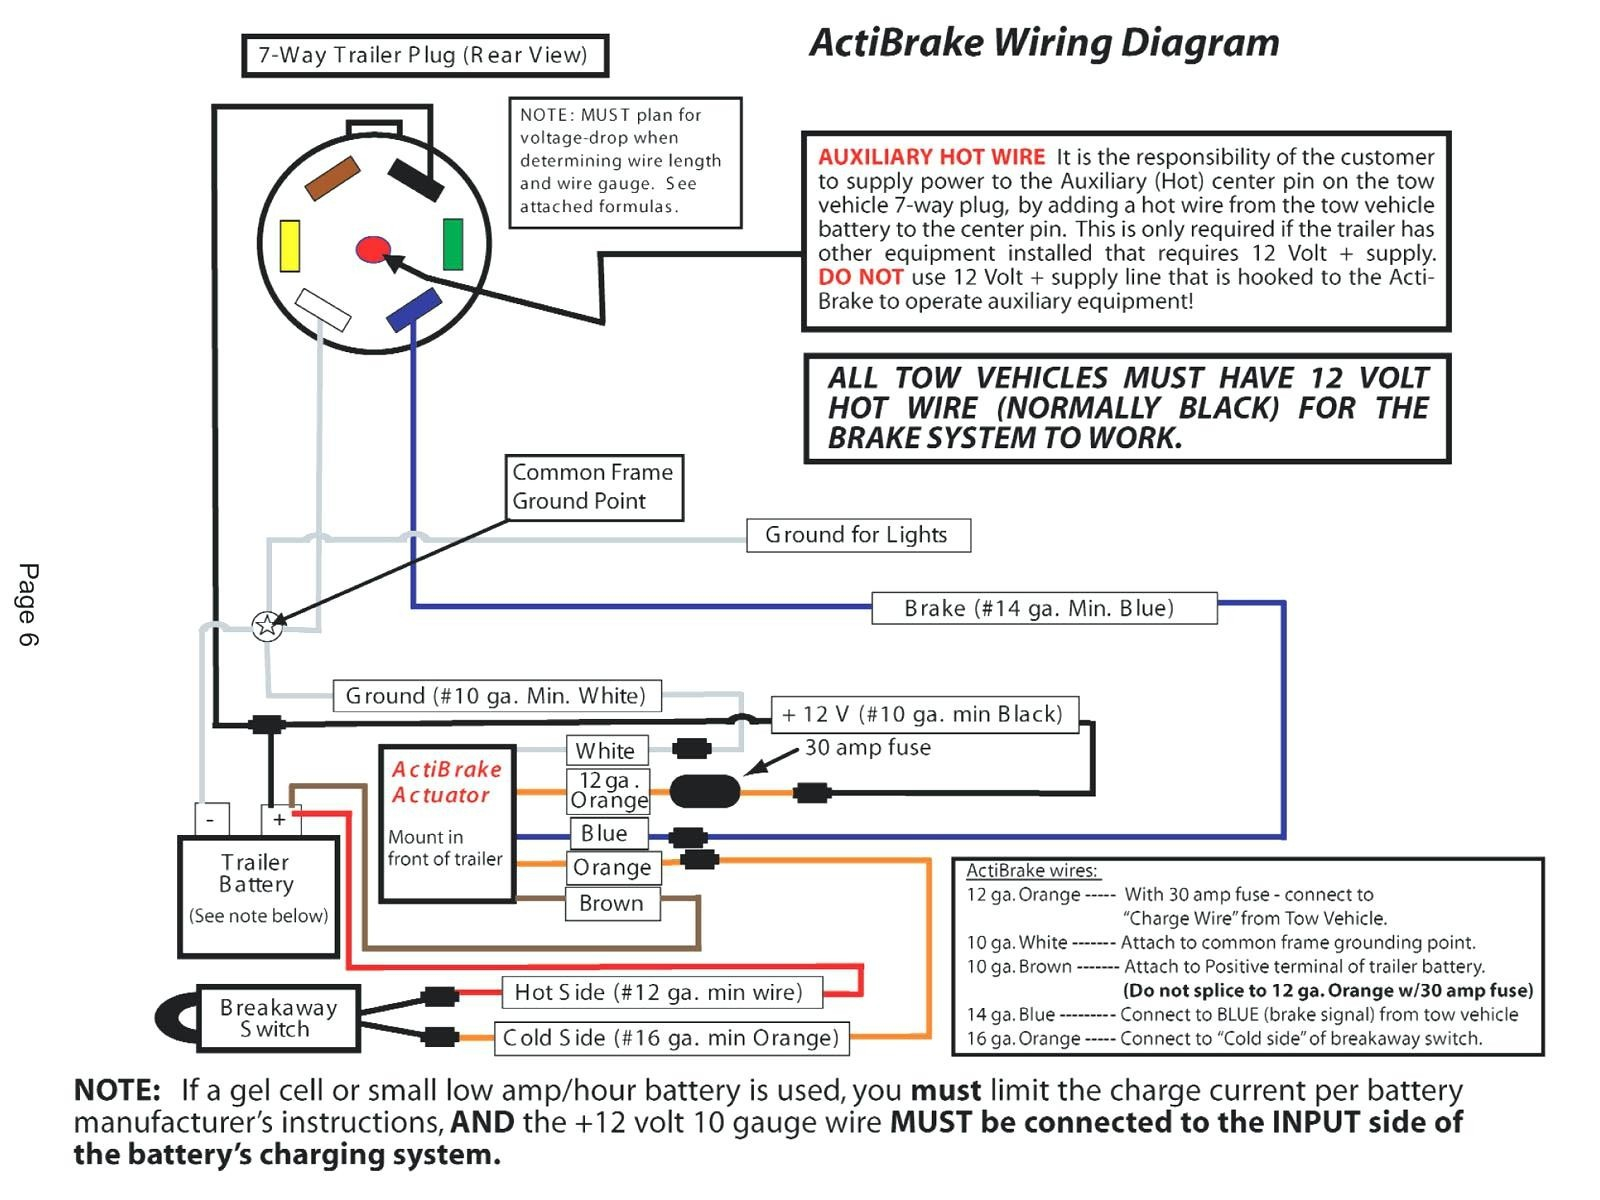 Wiring Diagram 20 Amp Outlet Valid Switch Plug Wiring Diagram In 3 - 4 Pin Trailer Plug Wiring Diagram